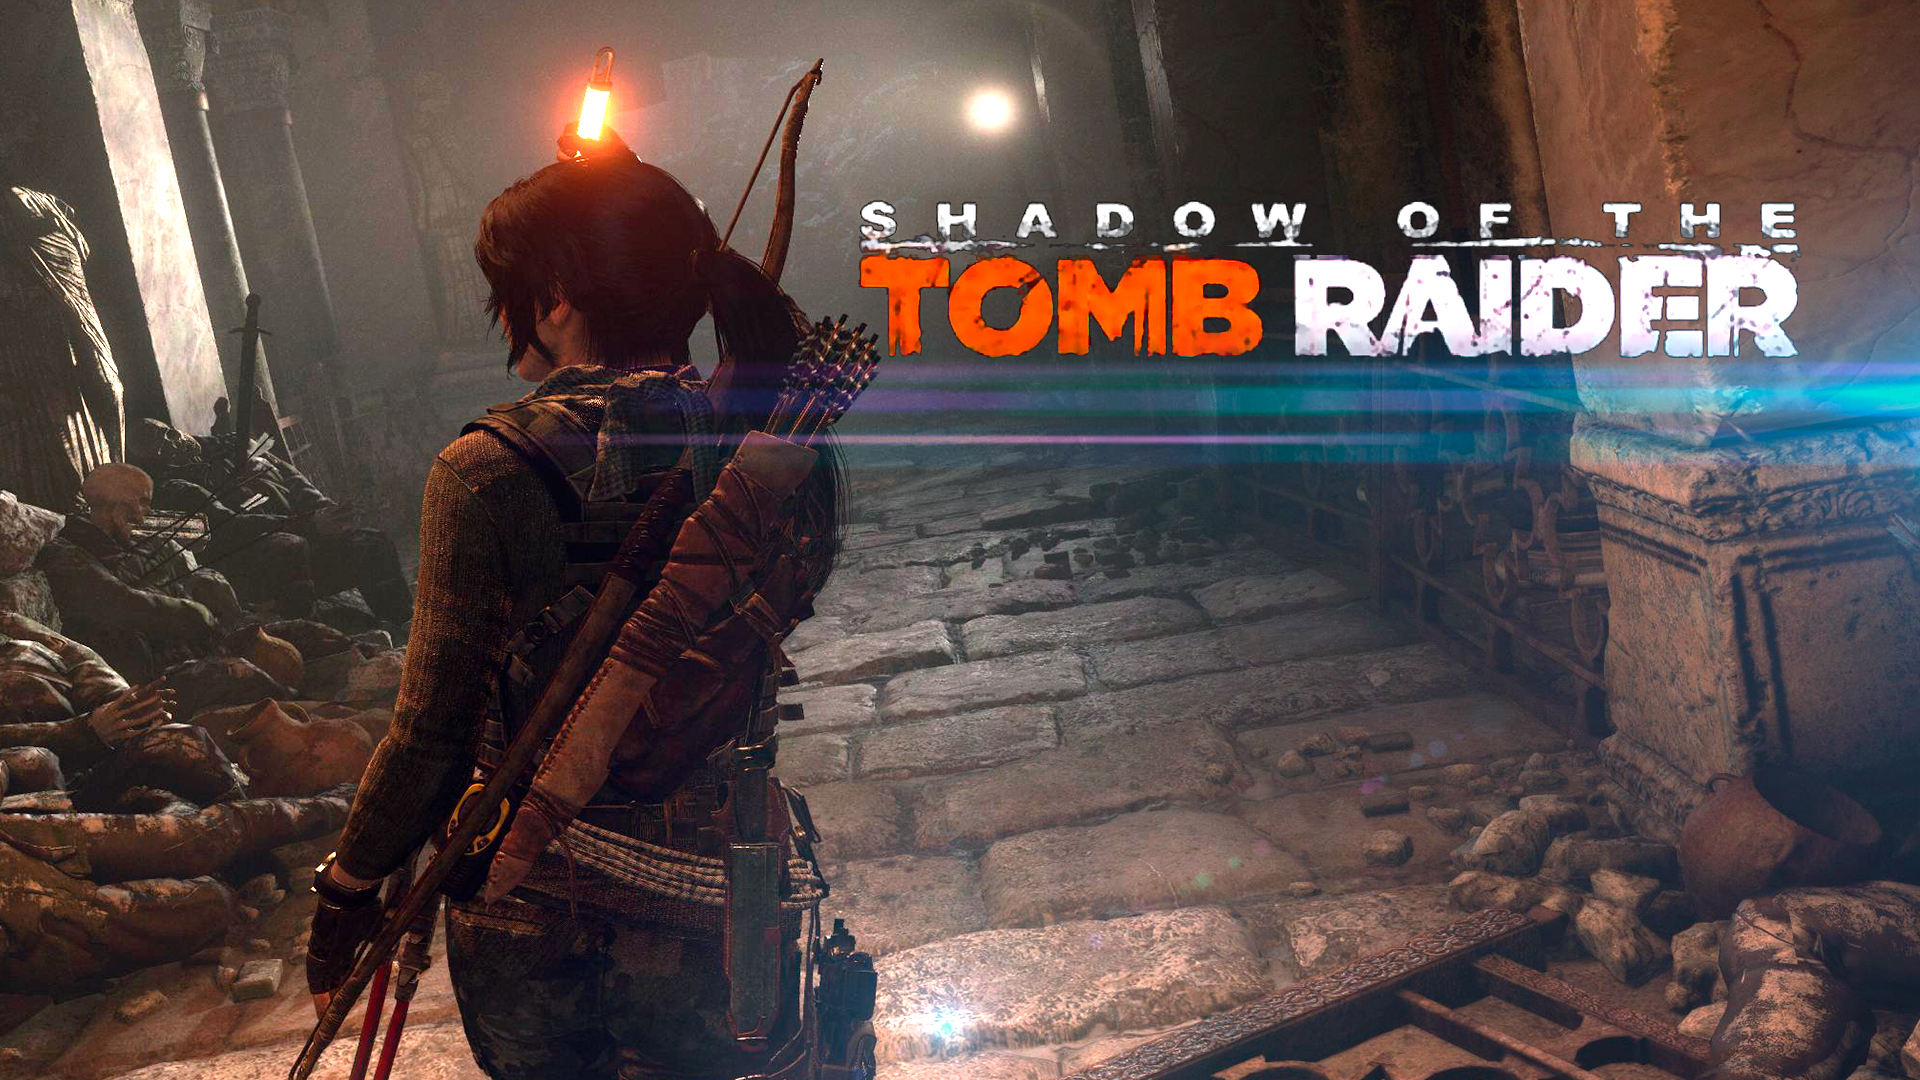 Shadow of the Tomb Raider: Novo Trailer e data de lançamento!